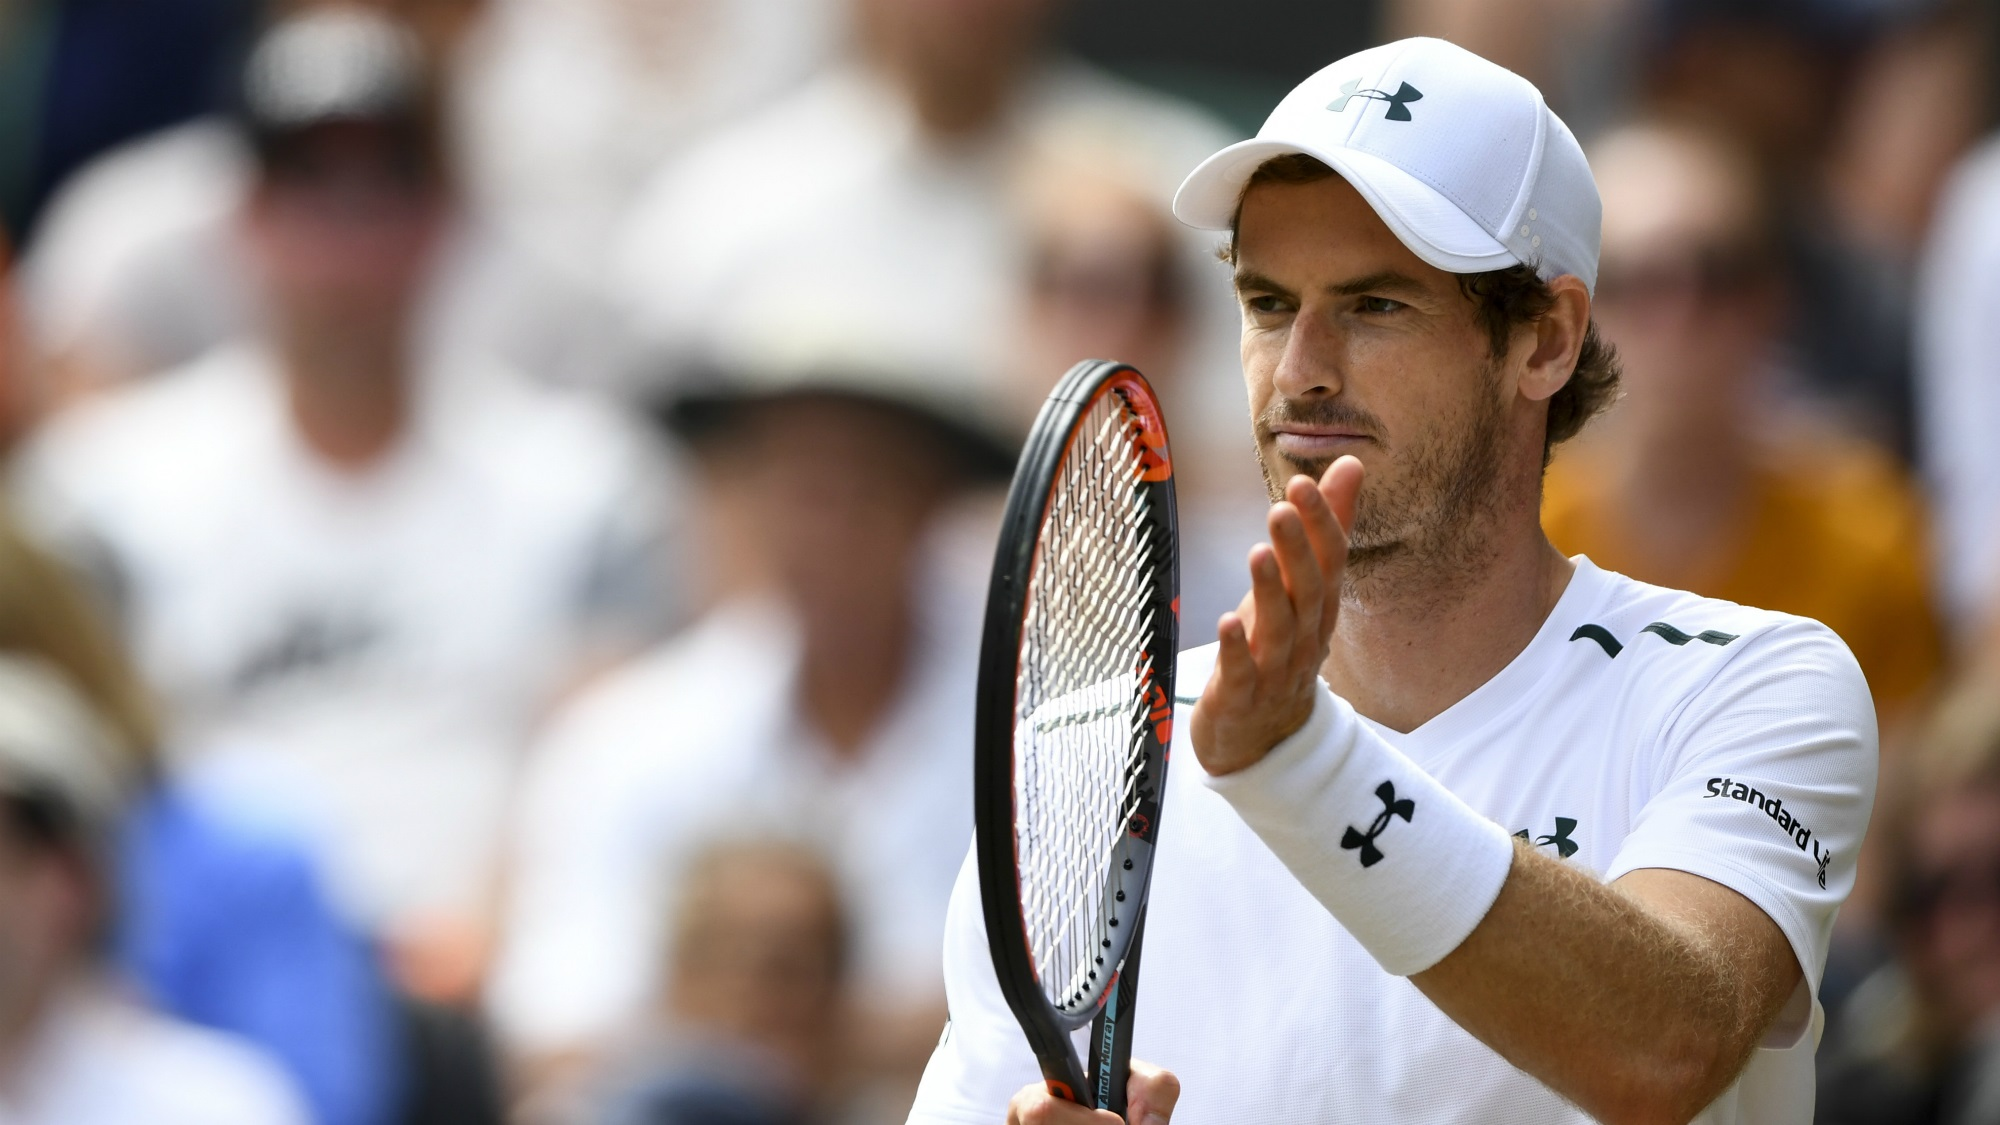 Andy Murray has withdrawn from the Australian Open